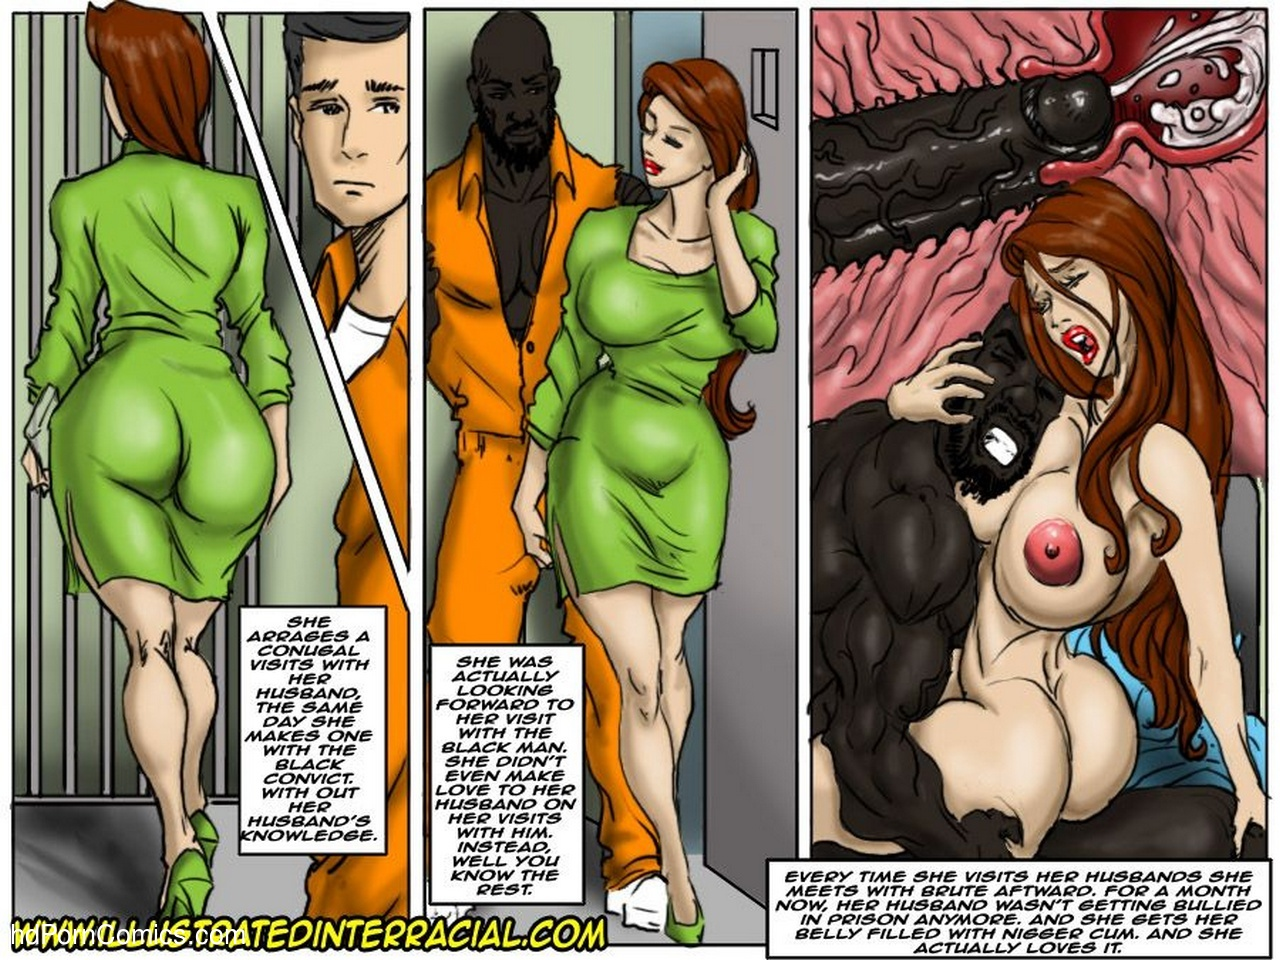 Wife-Gets-Pounded-While-Husband-s-Impounded13 free sex comic